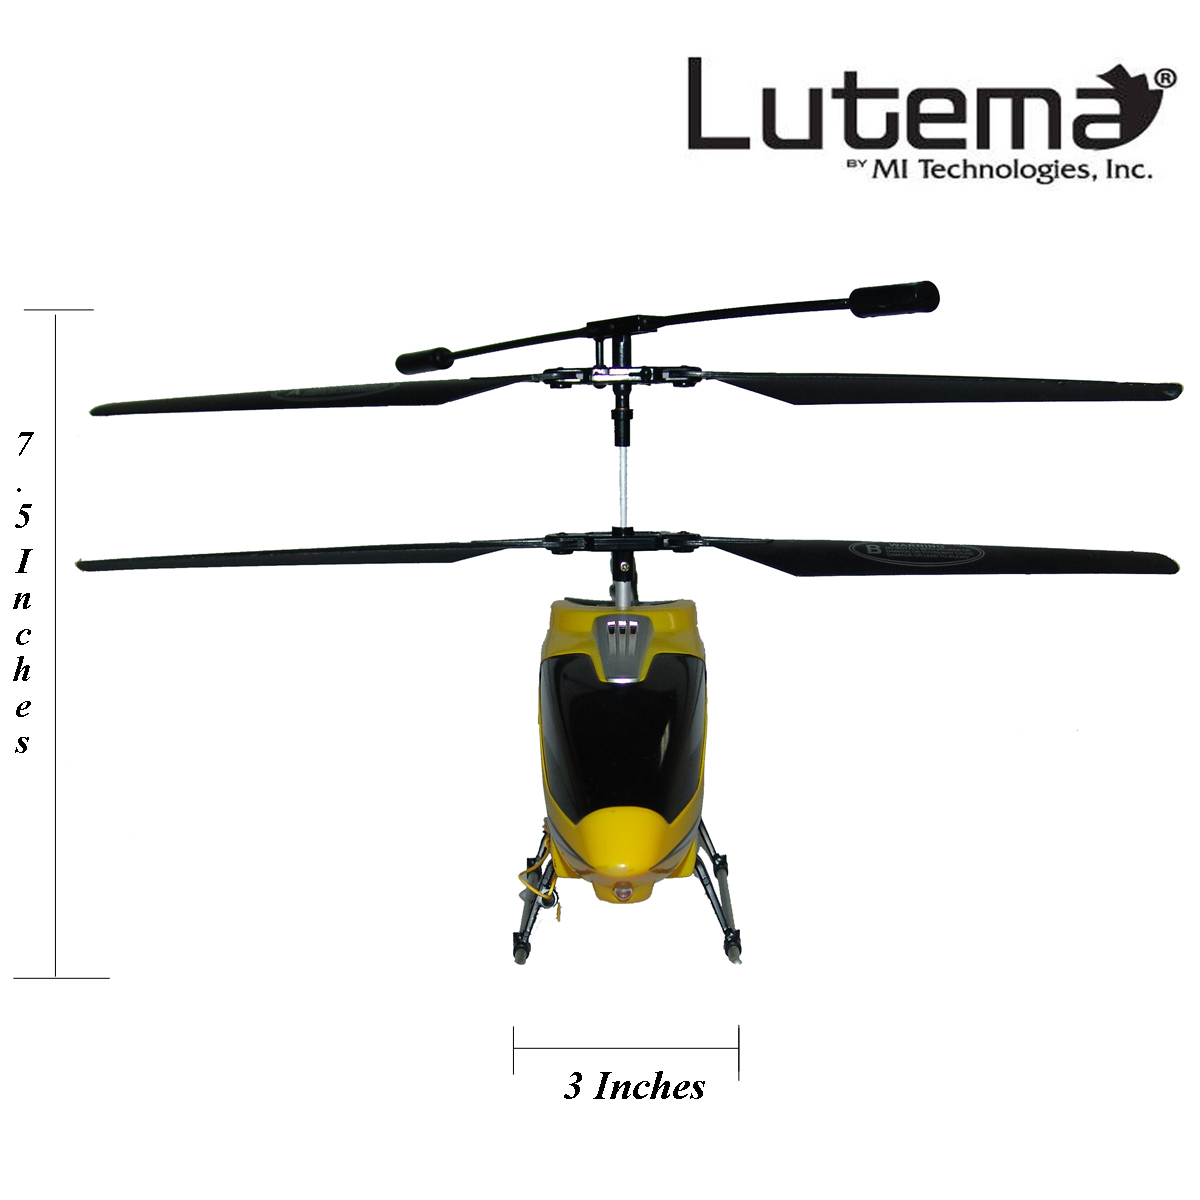 lutema helicopter with 361220885910 on Precio Html in addition Avatar Rc Helicopter 4ch likewise Best Rc Helicopter Reviews moreover B00LMMQ6R6 moreover MLM 553707482 Lutema Mid Sized 35ch Remote Control Helicopter Blue  JM.